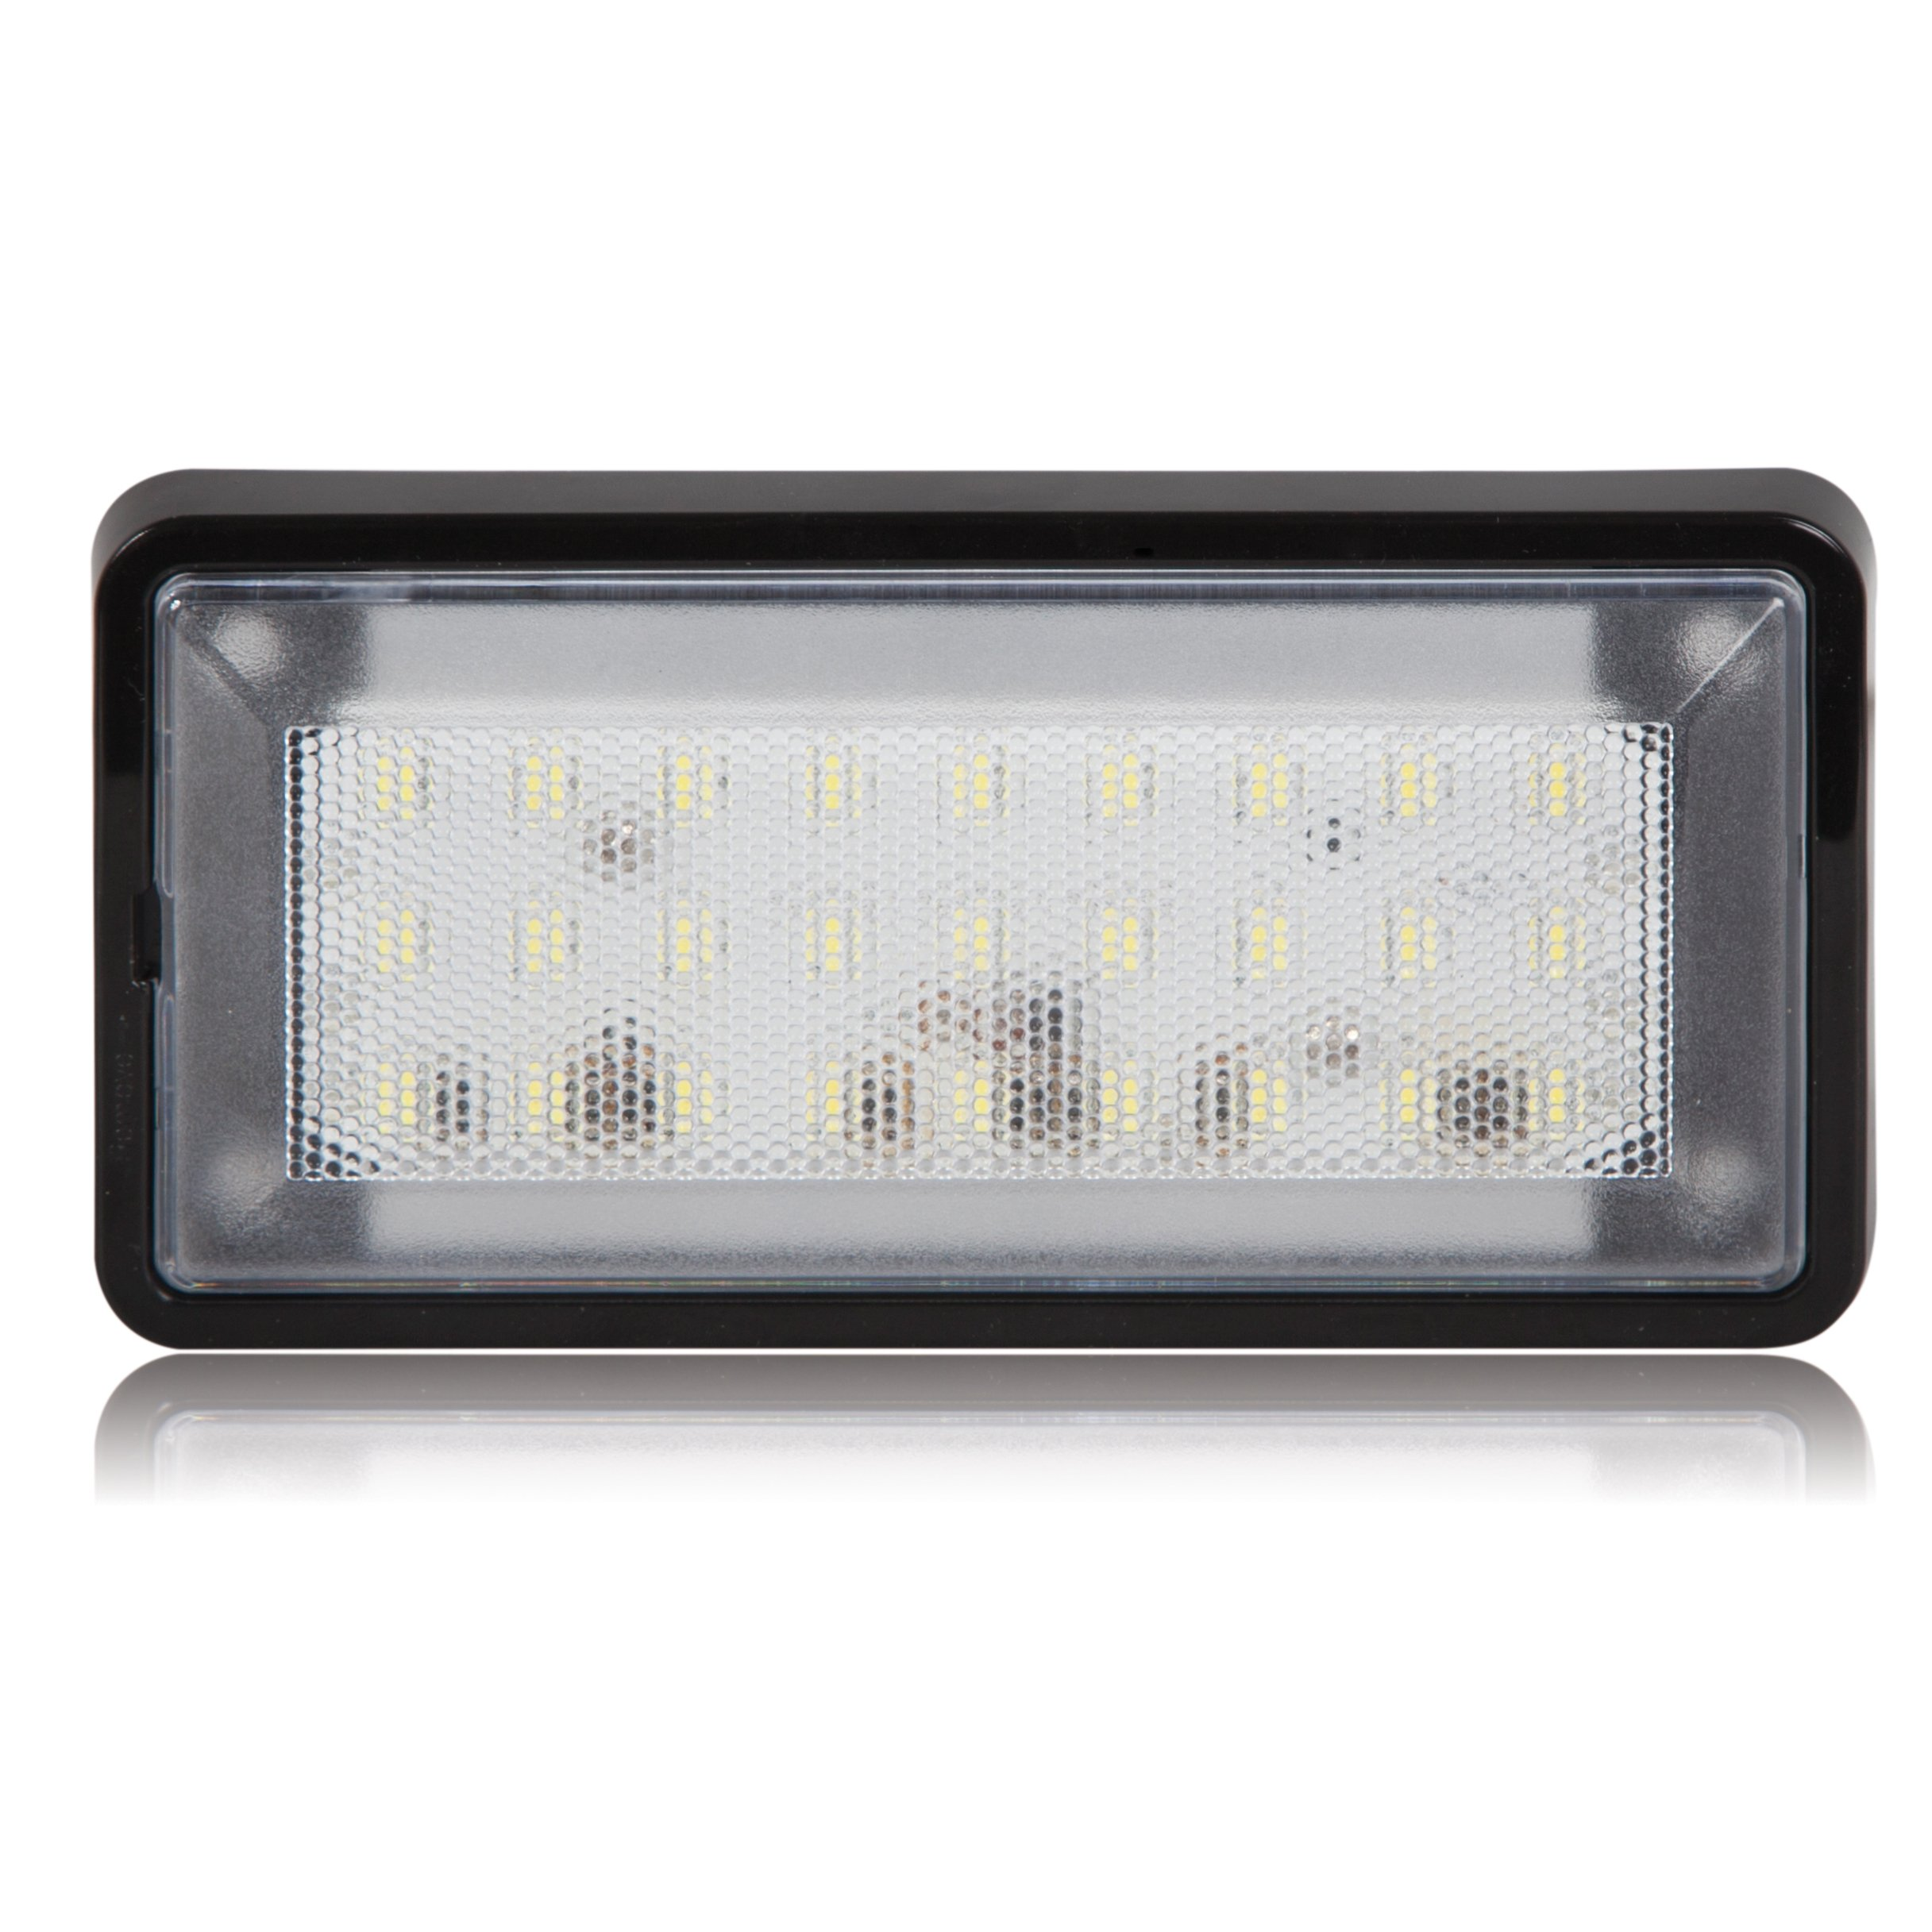 Maxxima M84427-A 27 LED 3''x6'' Interior Compartment Cargo Light 530 Lumens by Maxxima